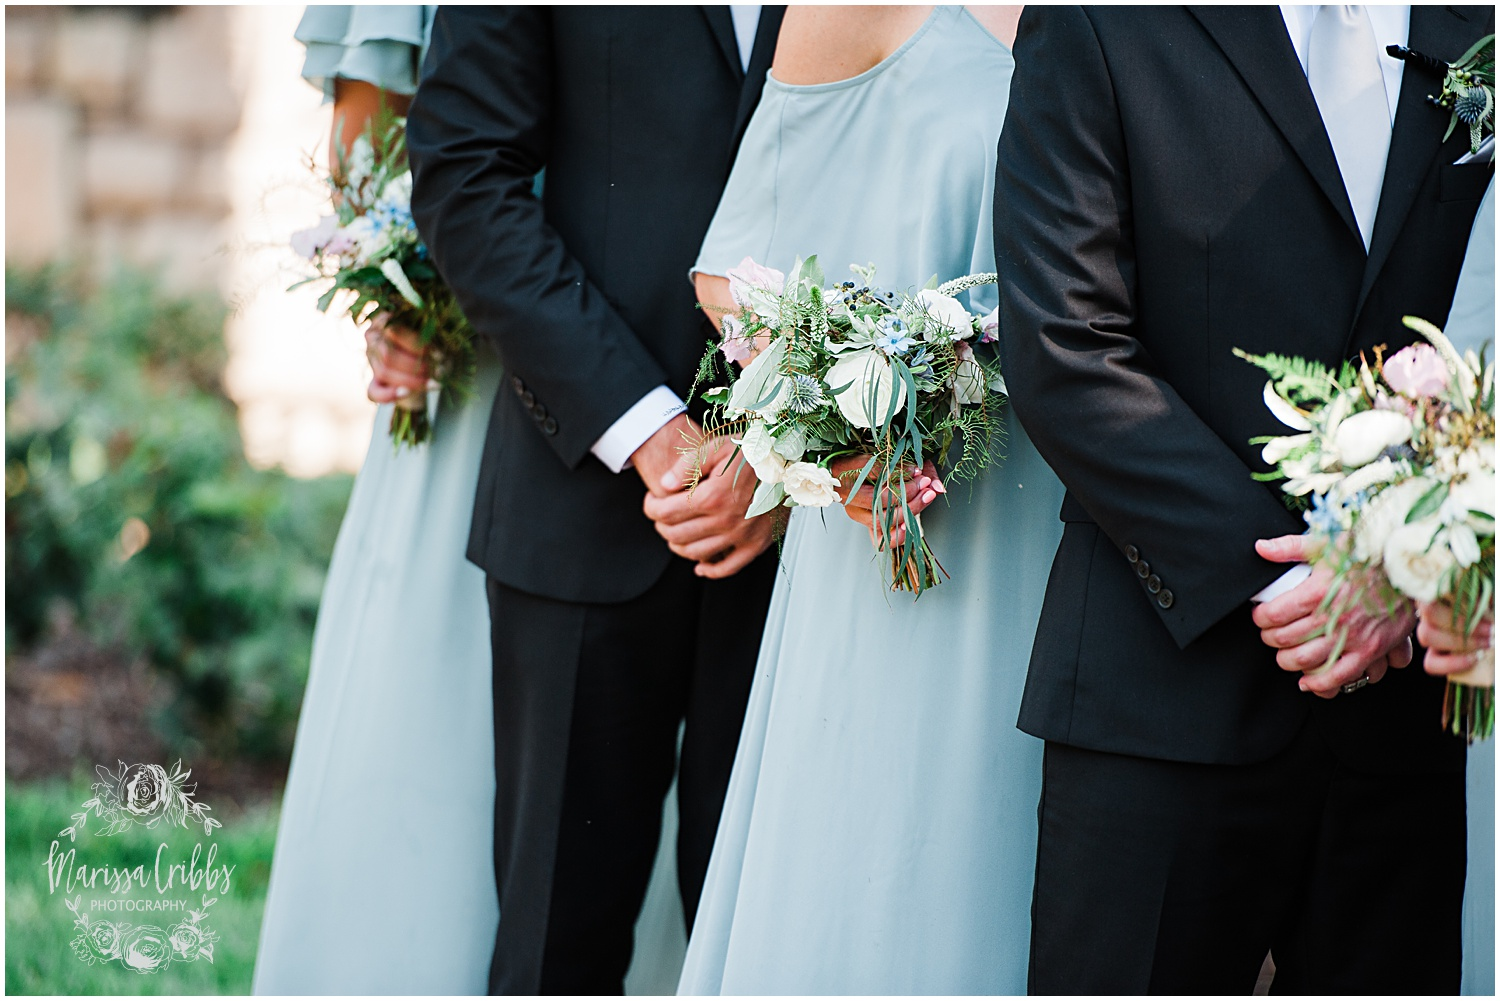 KELLY & MITCH MARRIED BLOG | MARISSA CRIBBS PHOTOGRAPHY | THE EVERLY EVENT SPACE_8862.jpg